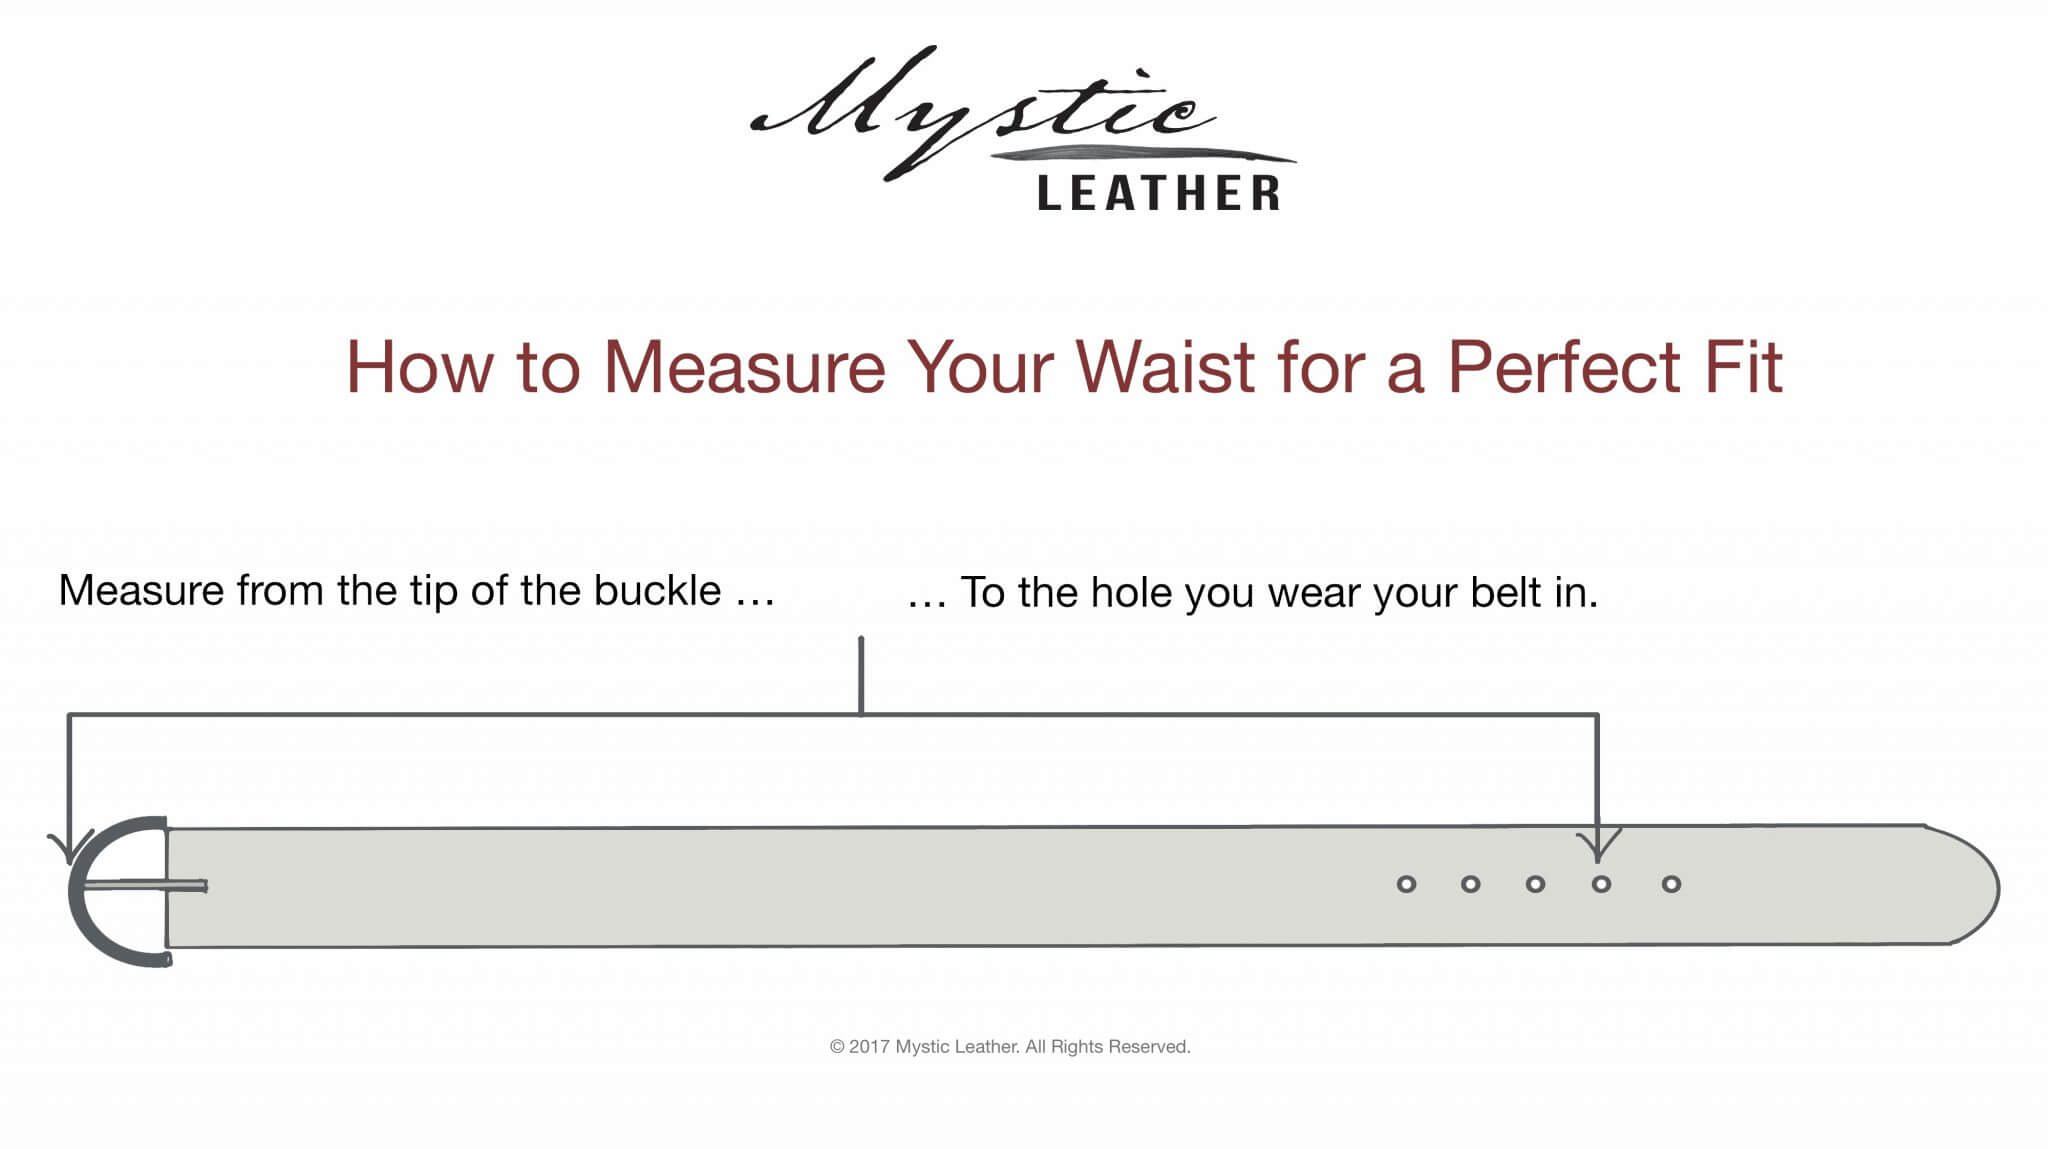 Waist Measurement - How to Order The Right Size Belt